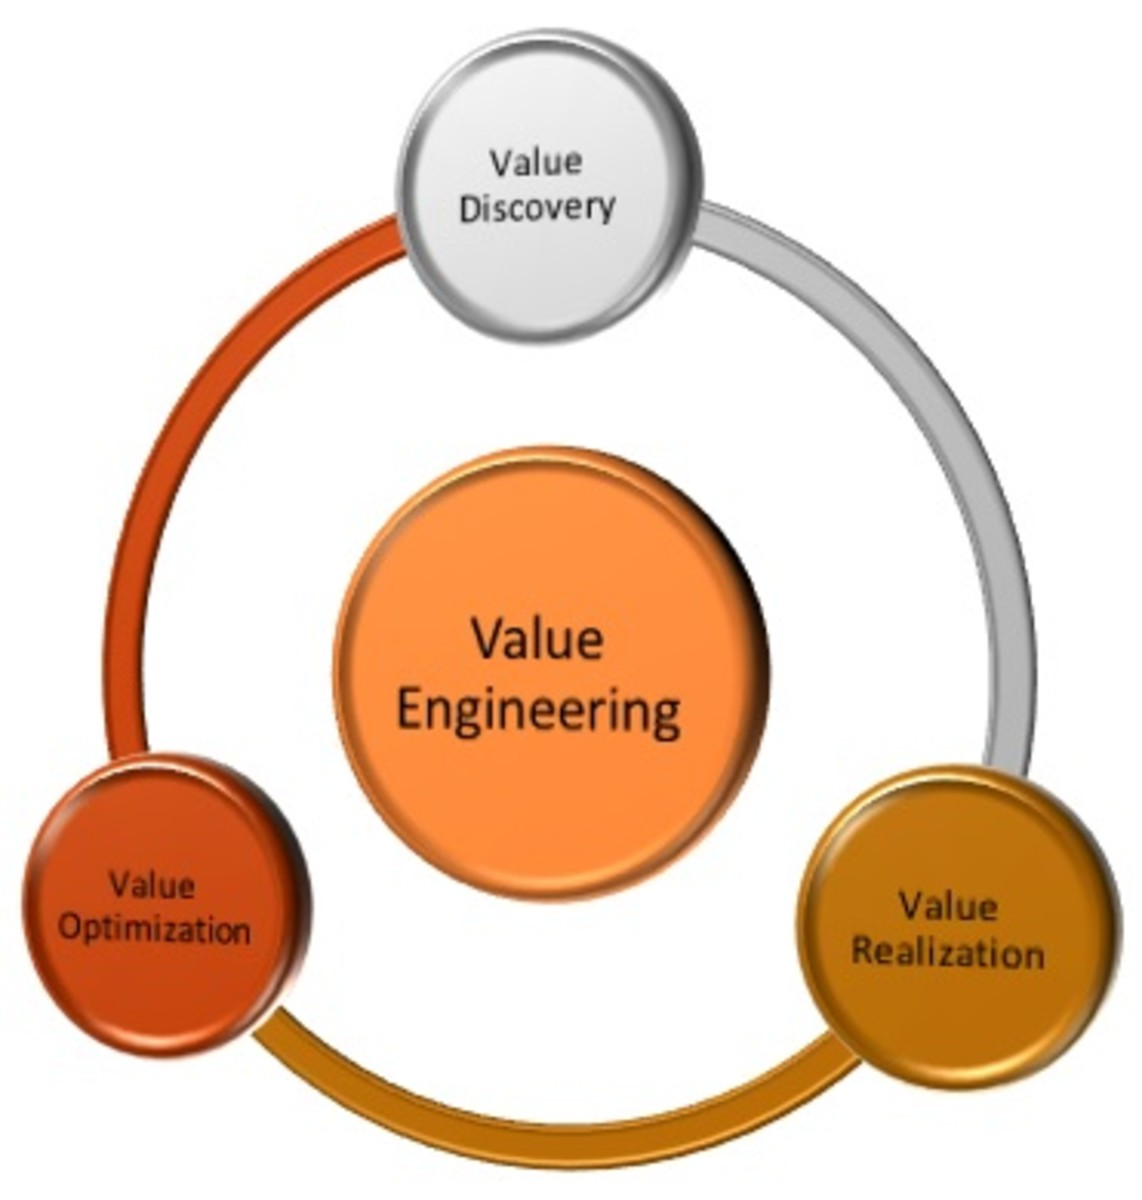 Value Engineering: Process or Focus?